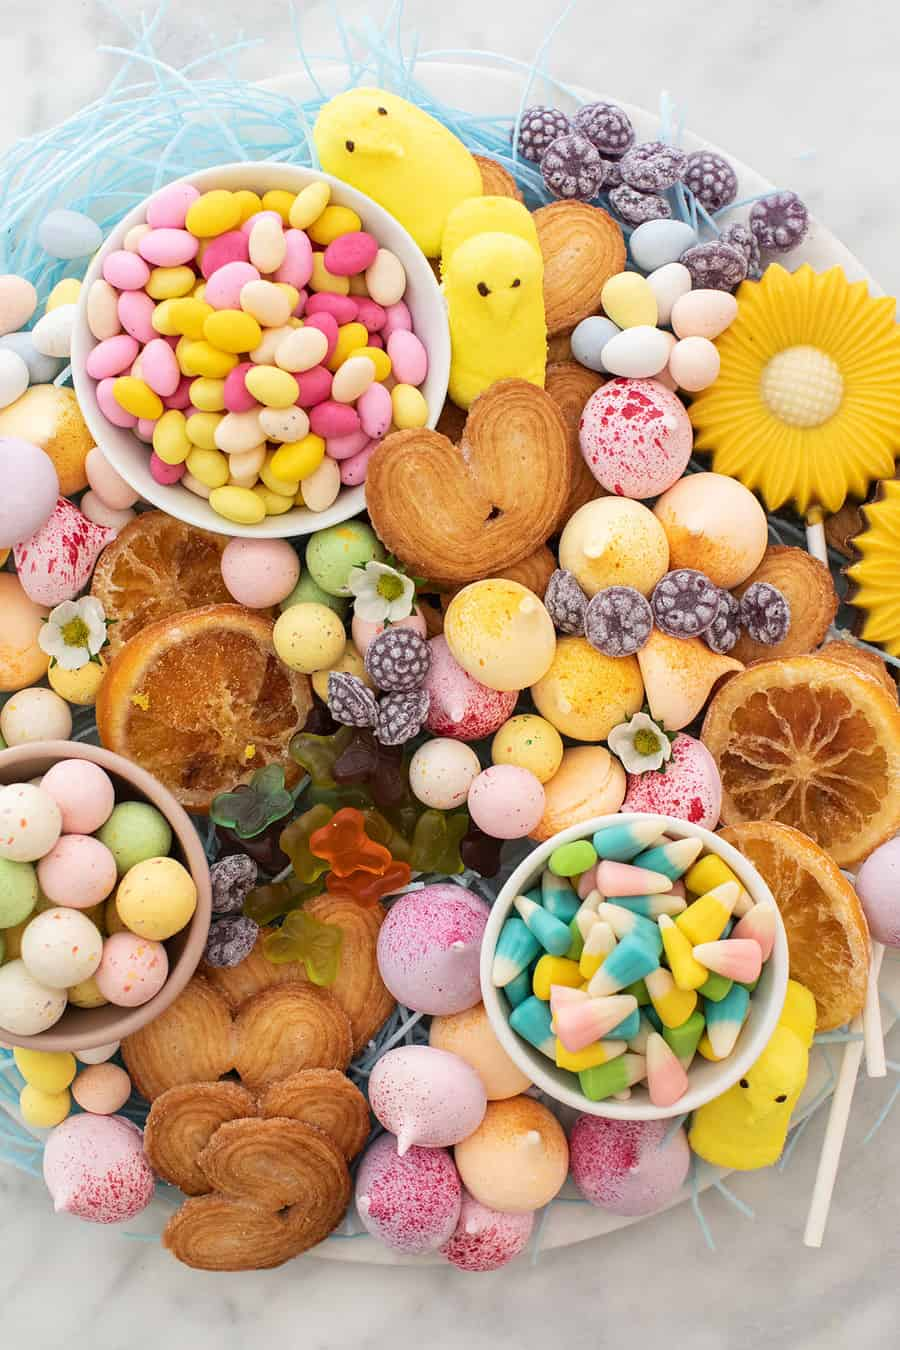 Easter dessert candy platter filled with colorful candy